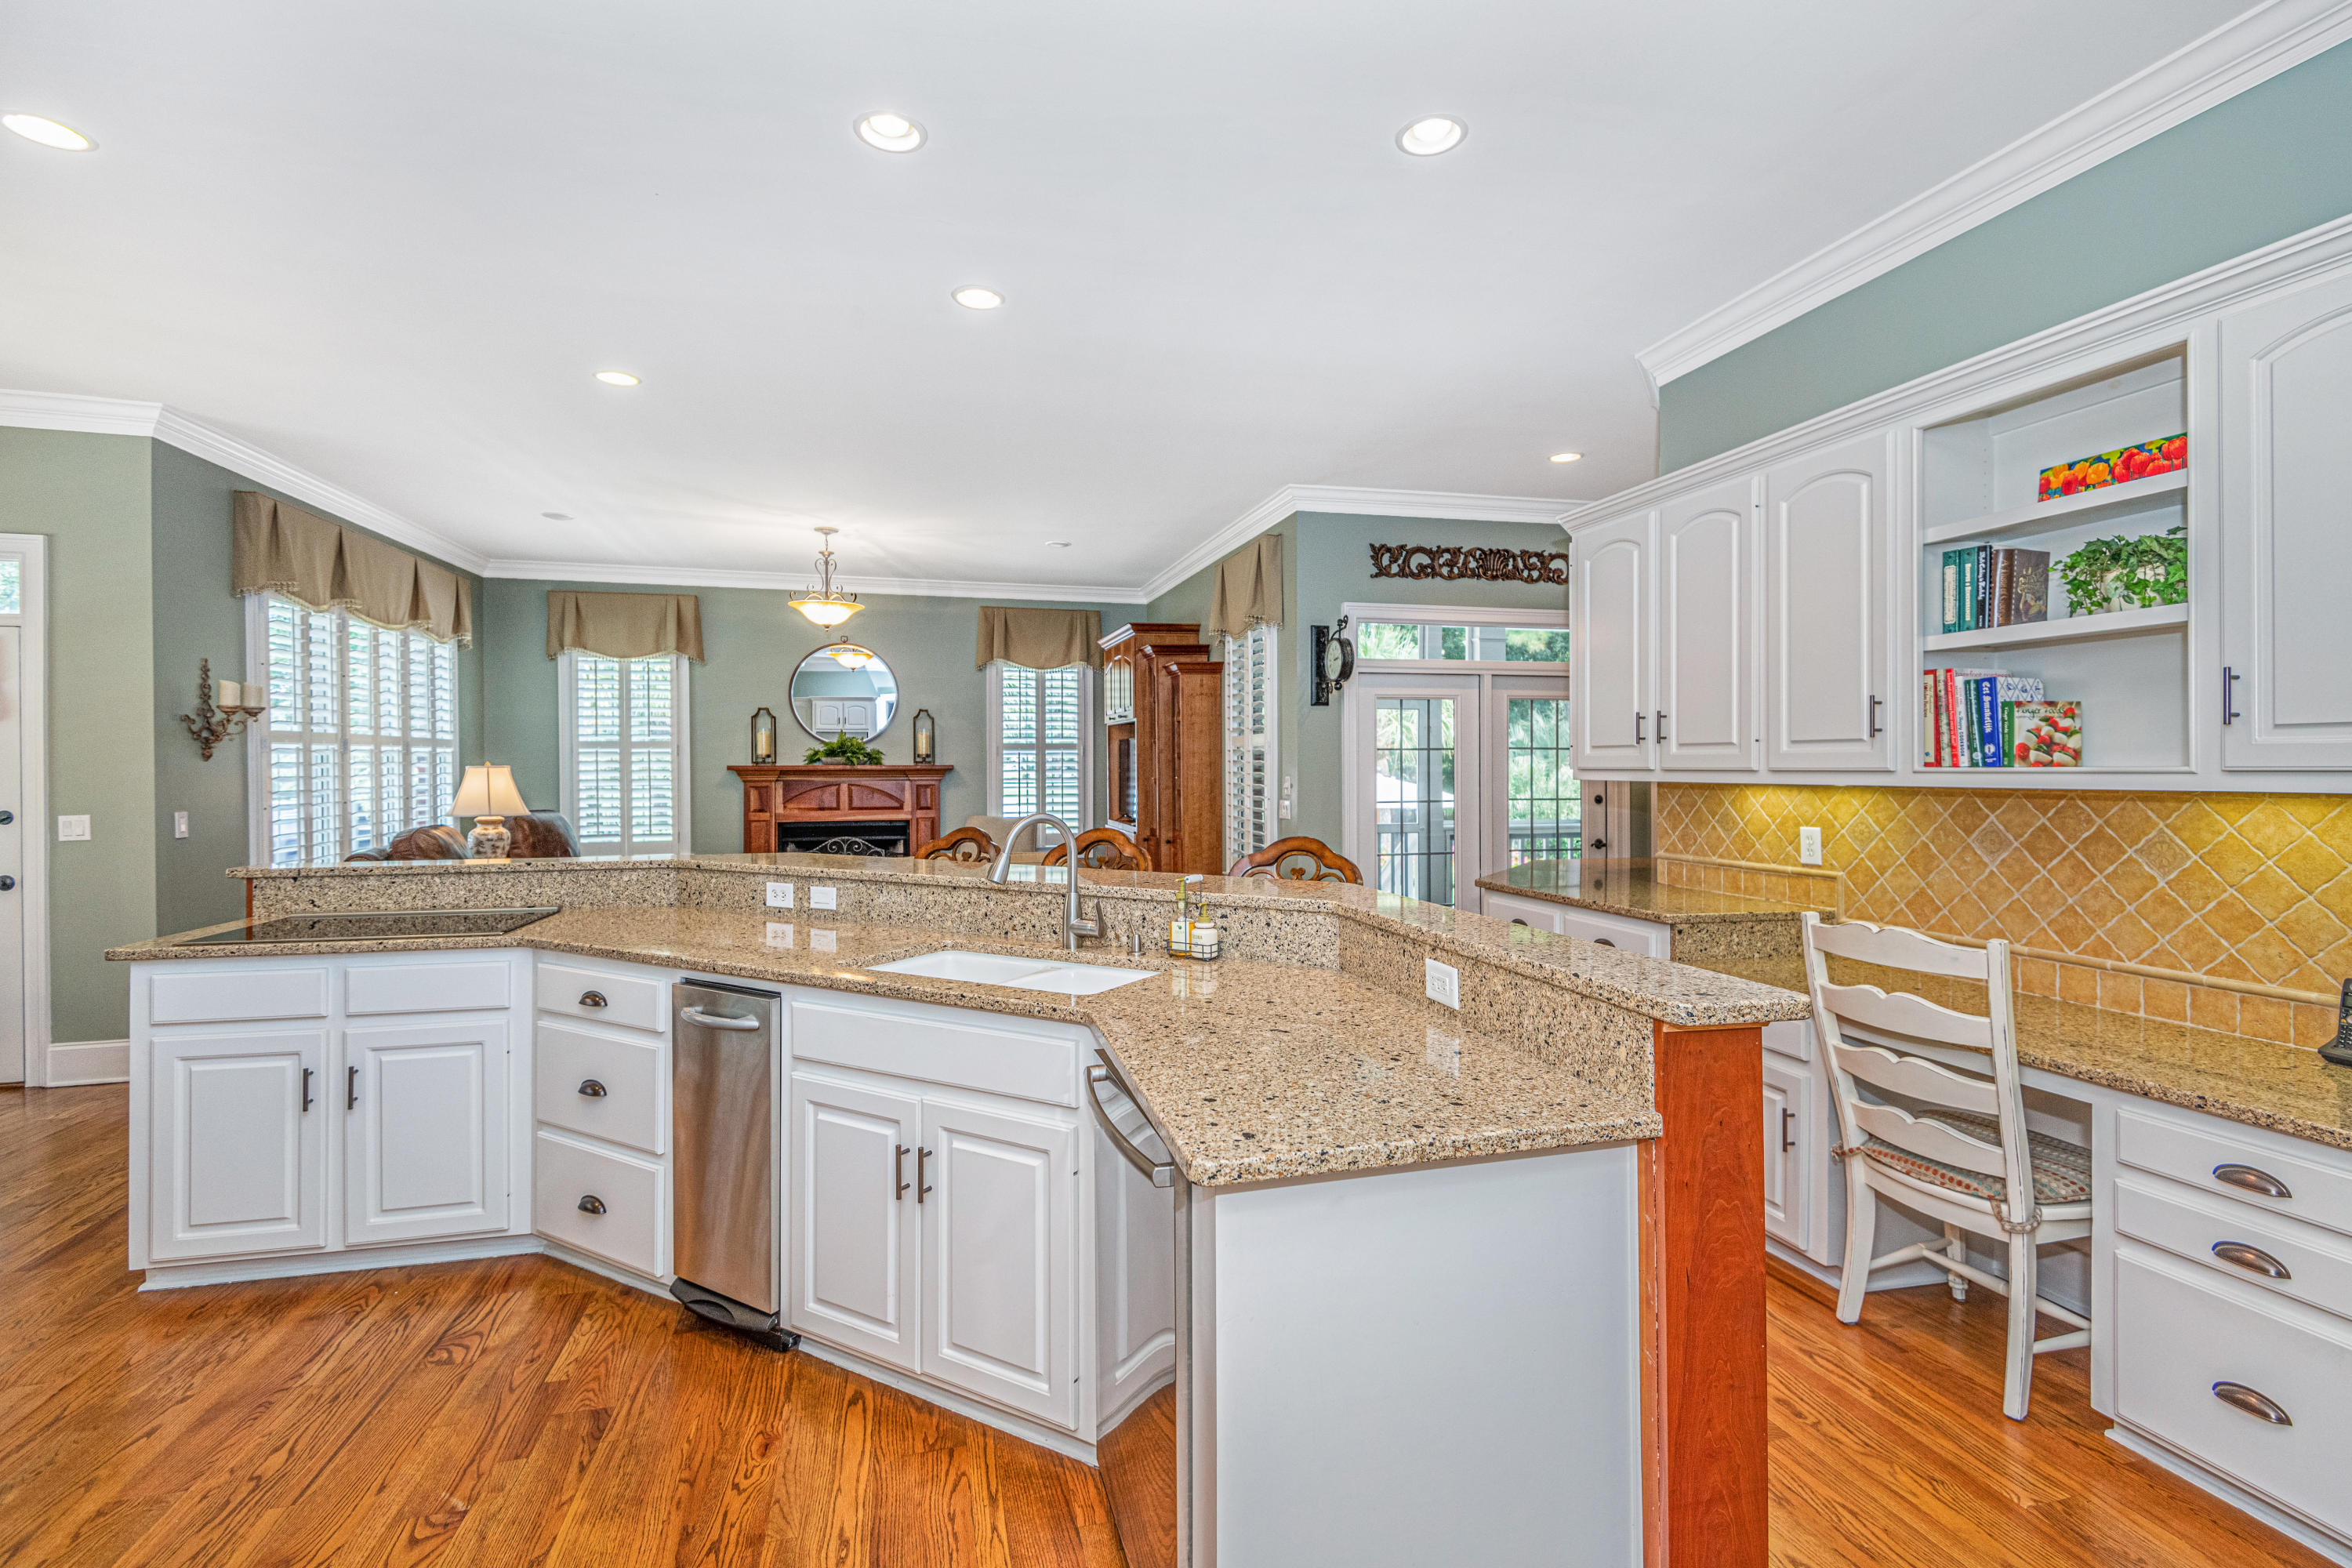 Dunes West Homes For Sale - 1837 Shell Ring, Mount Pleasant, SC - 21